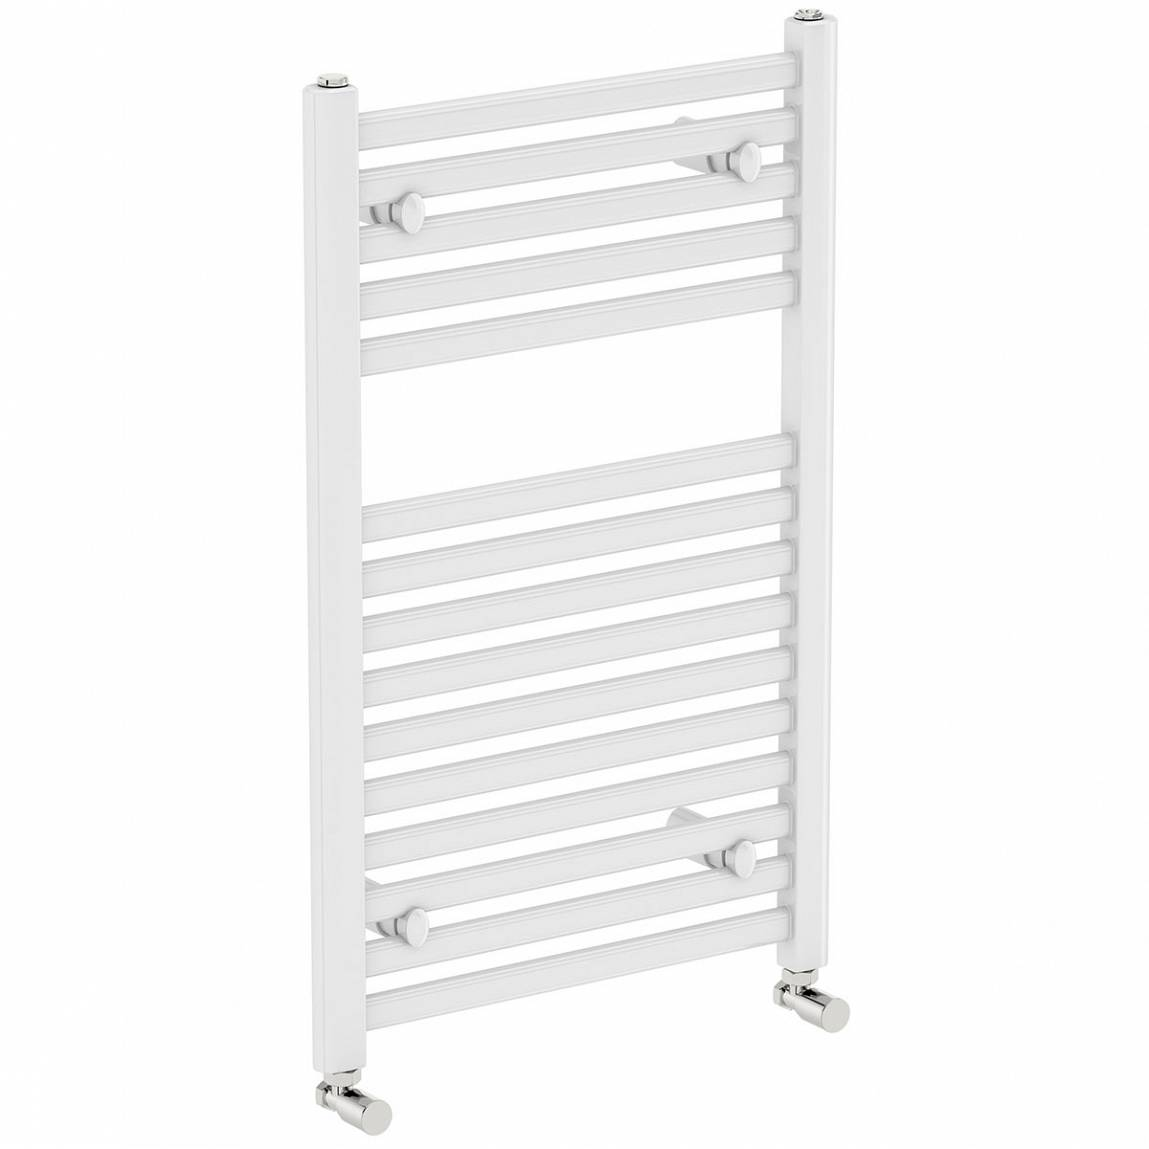 Image of White Heated Towel Rail 800 x 450